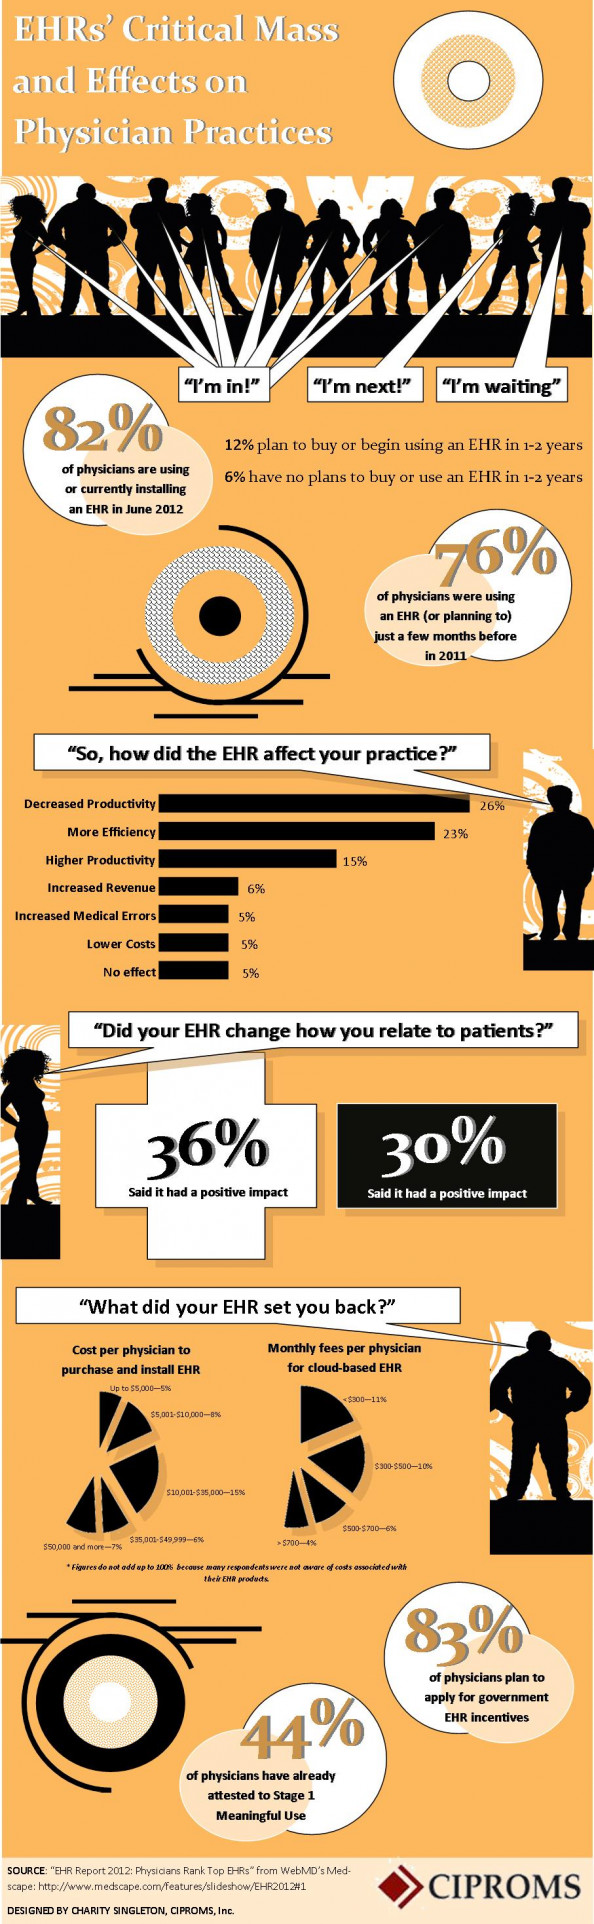 EHRs&#039; Critical Mass and Effects on Physician Practices Infographic